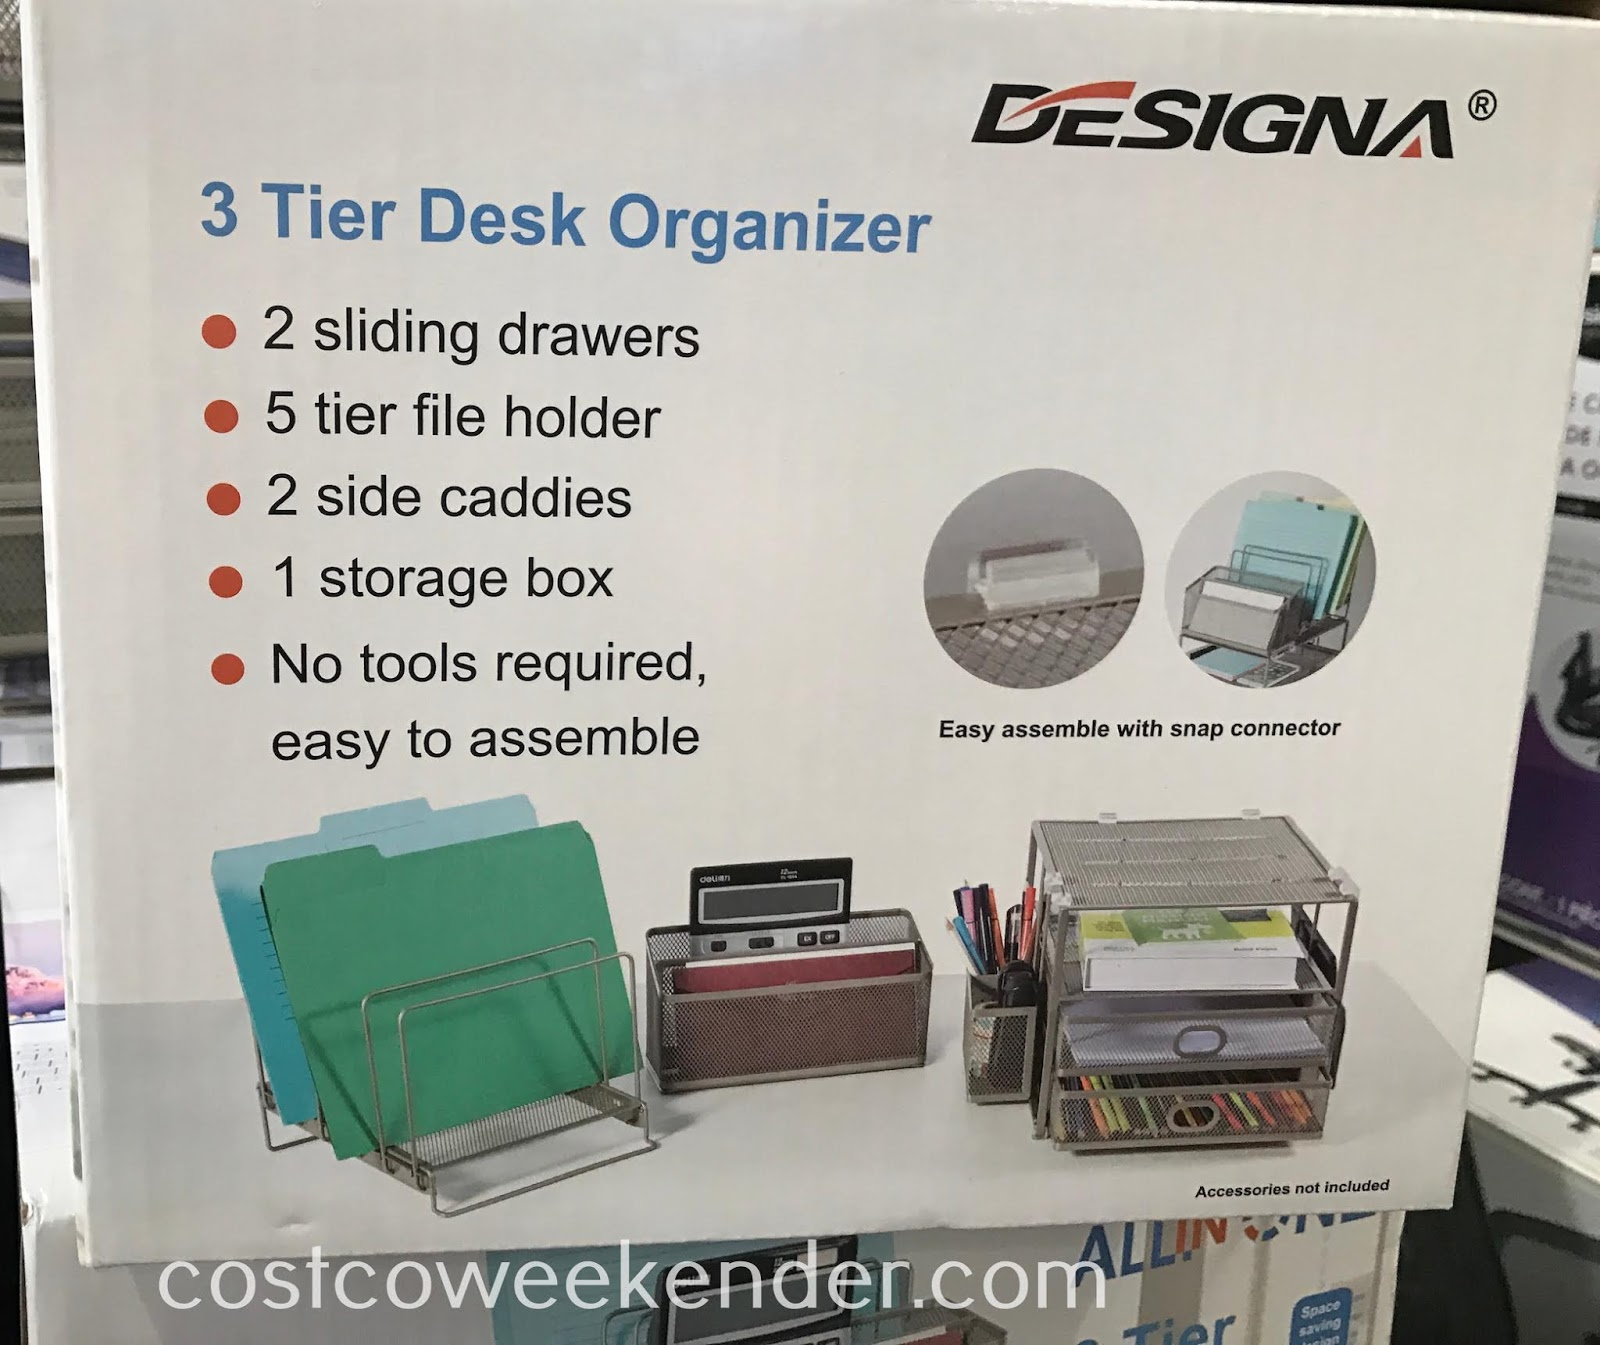 Costco 1226138 - Sunrising 3 Tier Desk Organizer: great for any home or office space